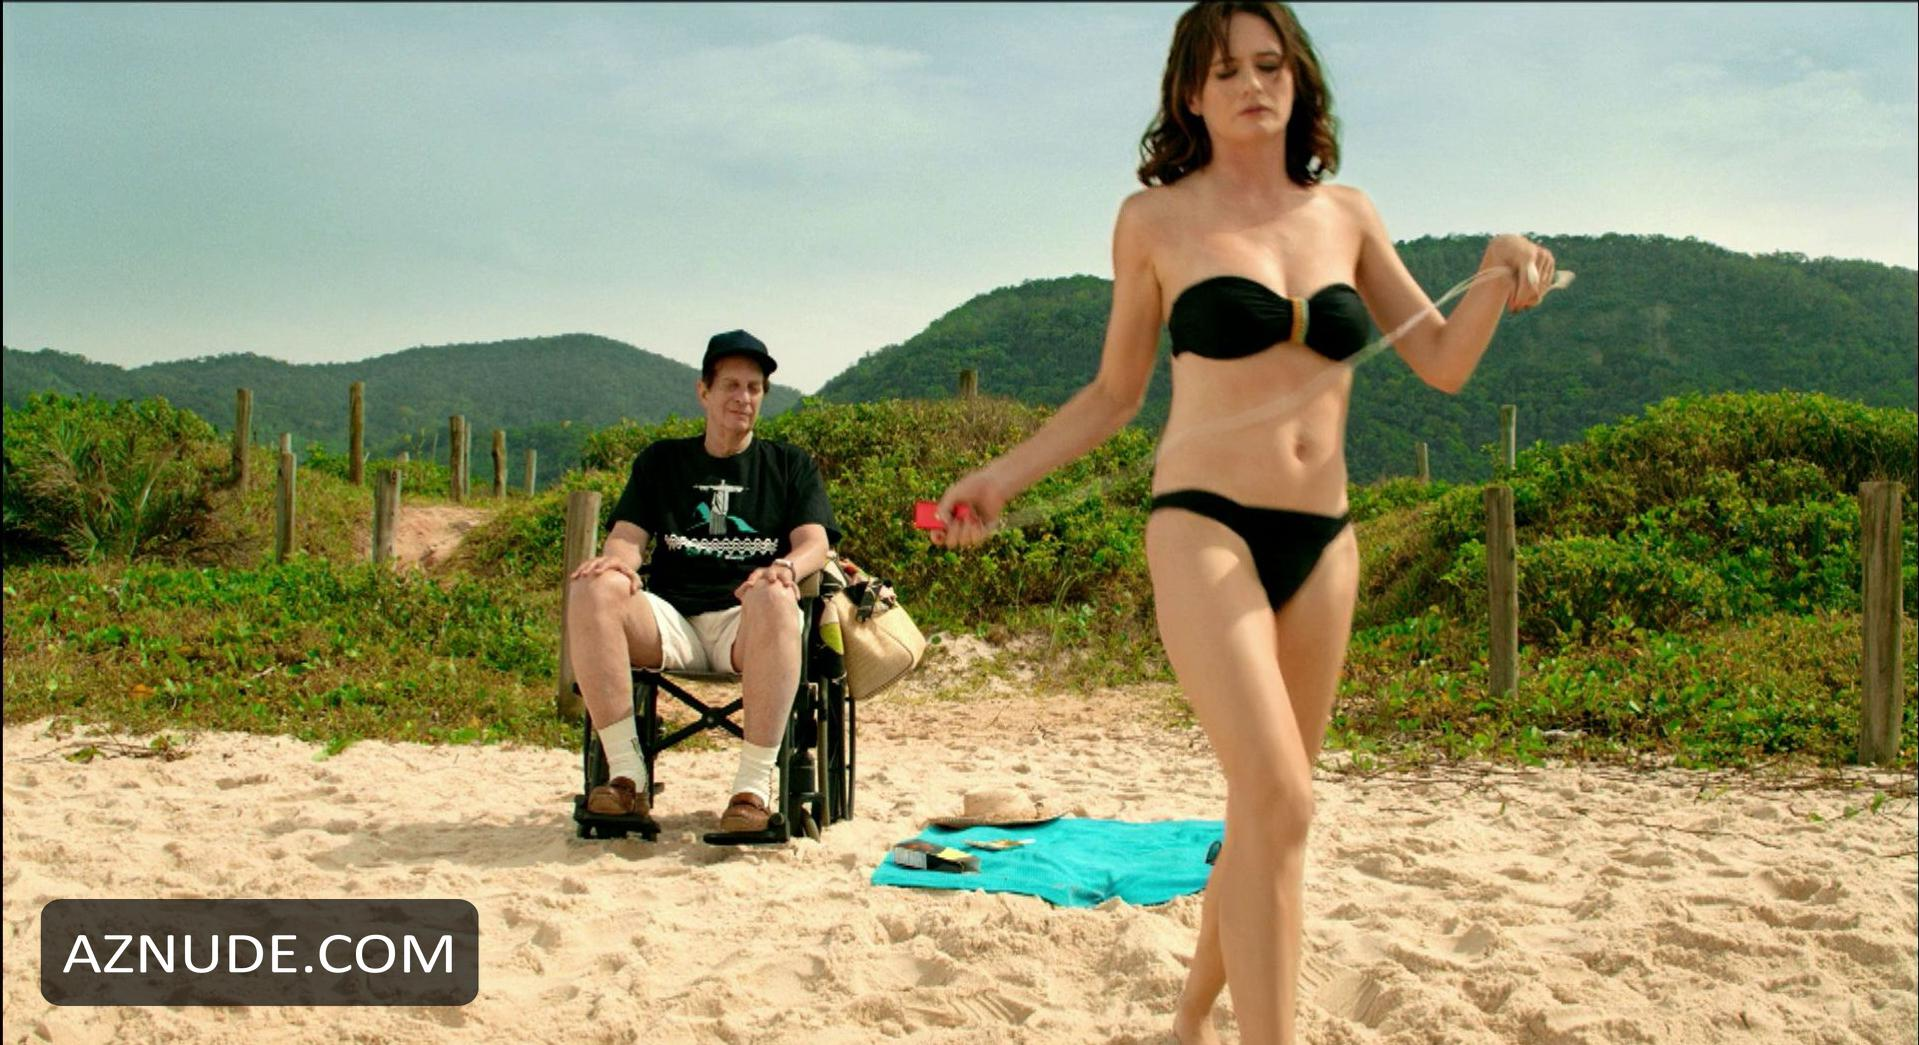 For Emily mortimer full frontal nudity valuable opinion